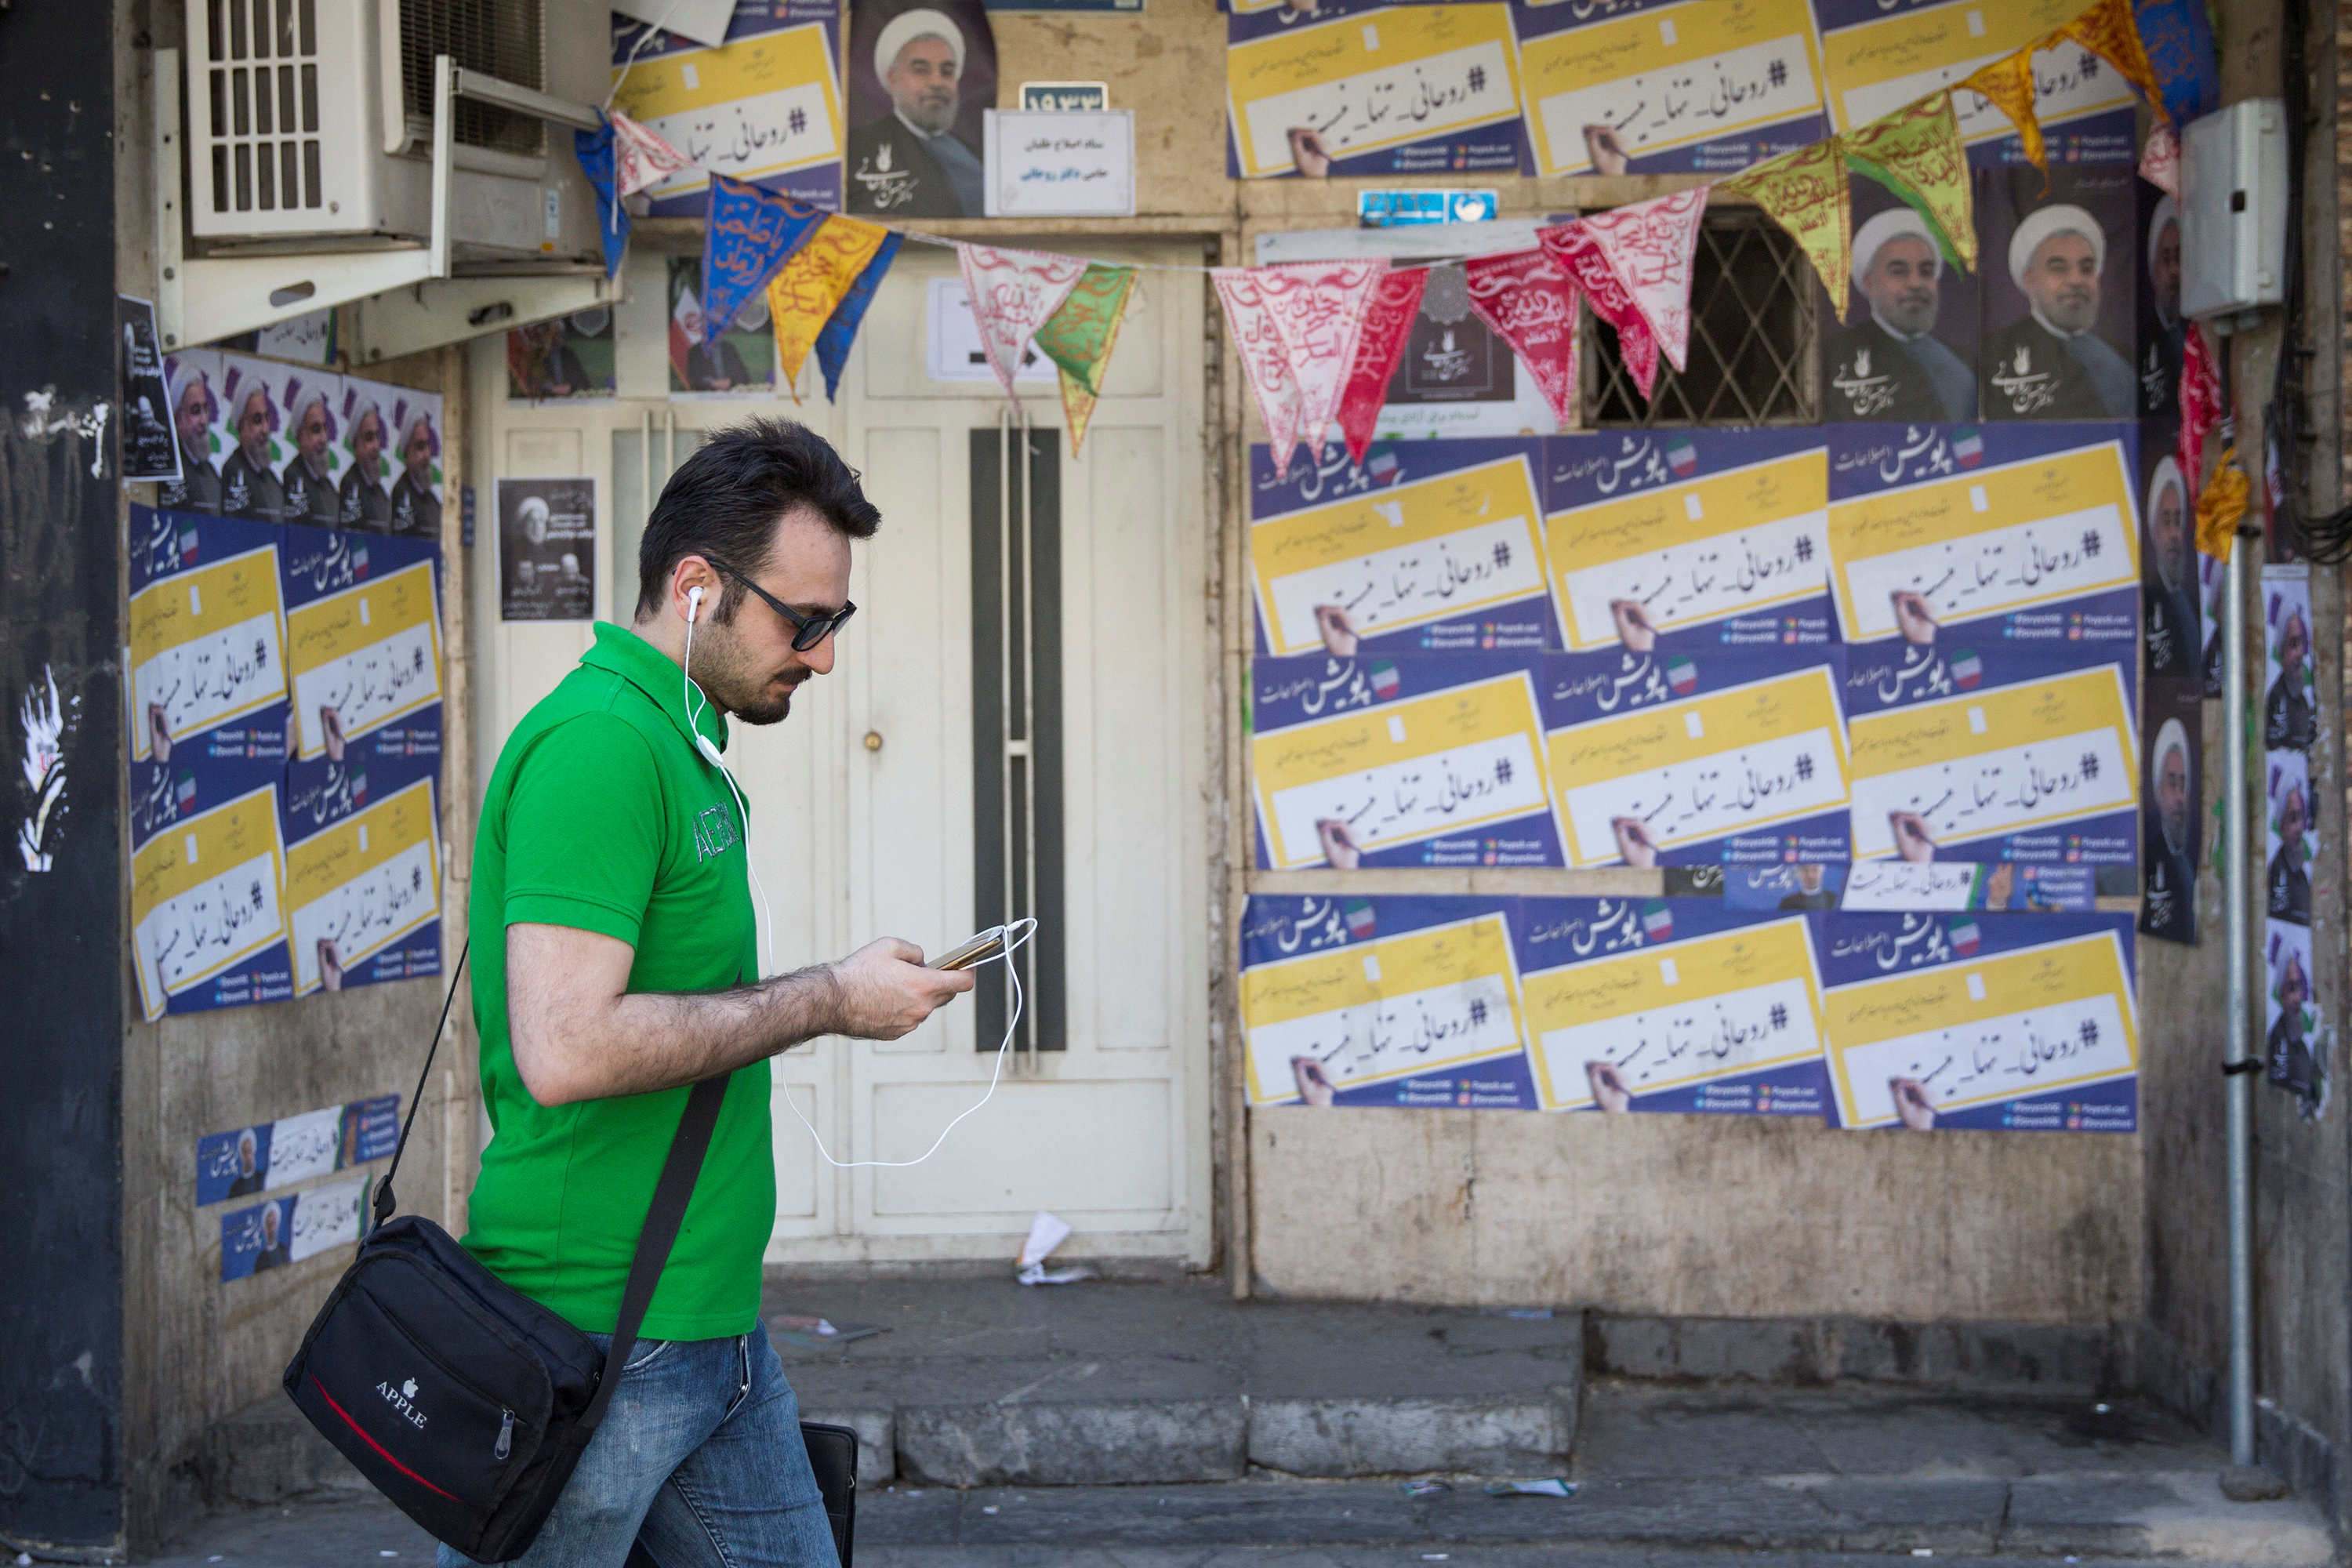 Iranian hackers' Android malware spies on dissidents by stealing 2FA codes